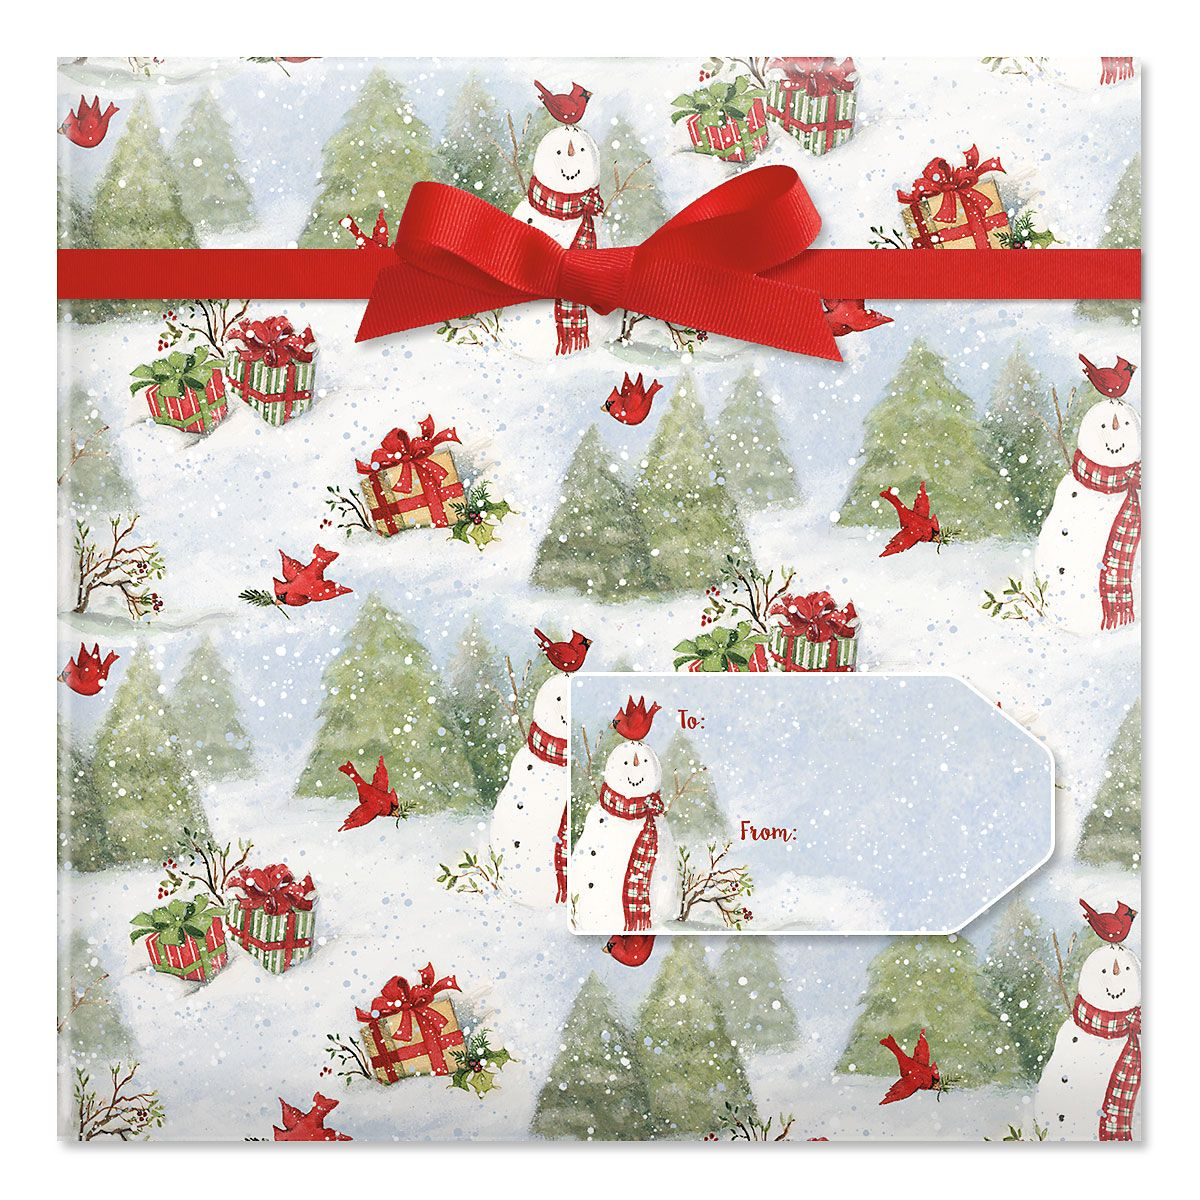 Snowy Cardinals Jumbo Rolled Gift Wrap and Labels